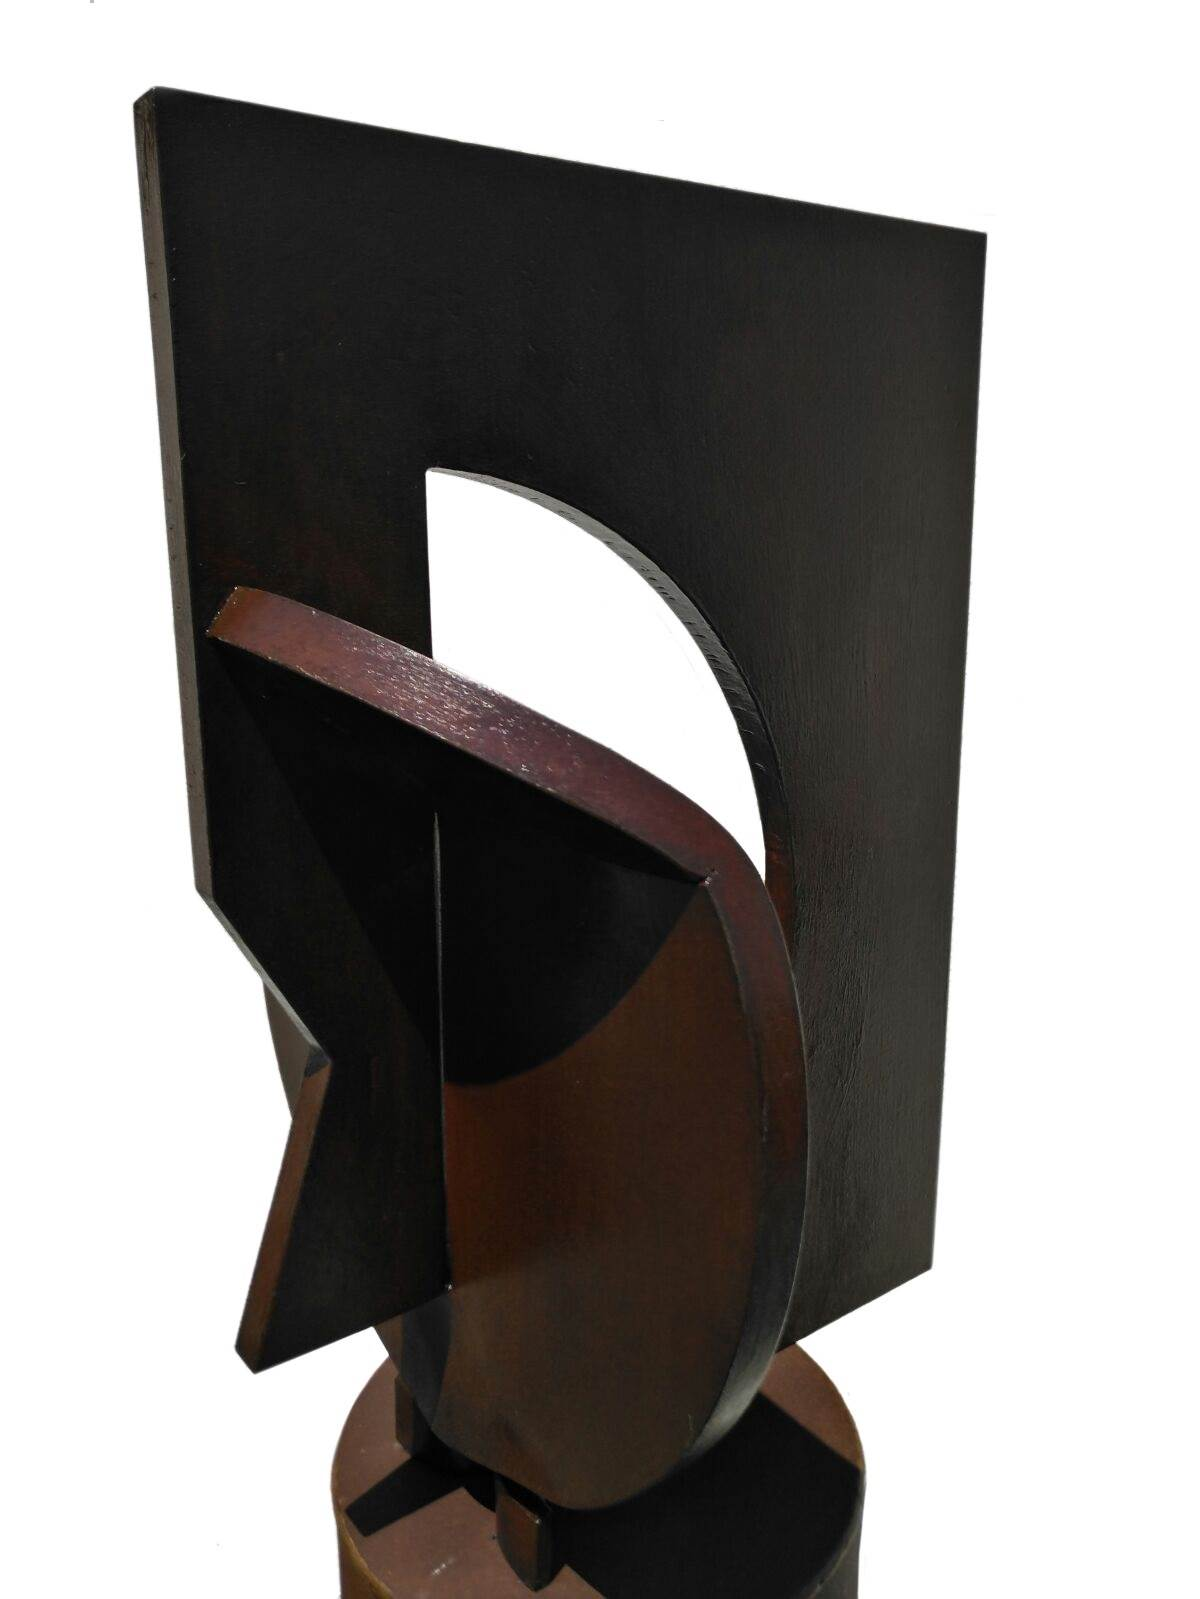 Cara al Aire, original Abstract Iron Sculpture by Juan Coruxo